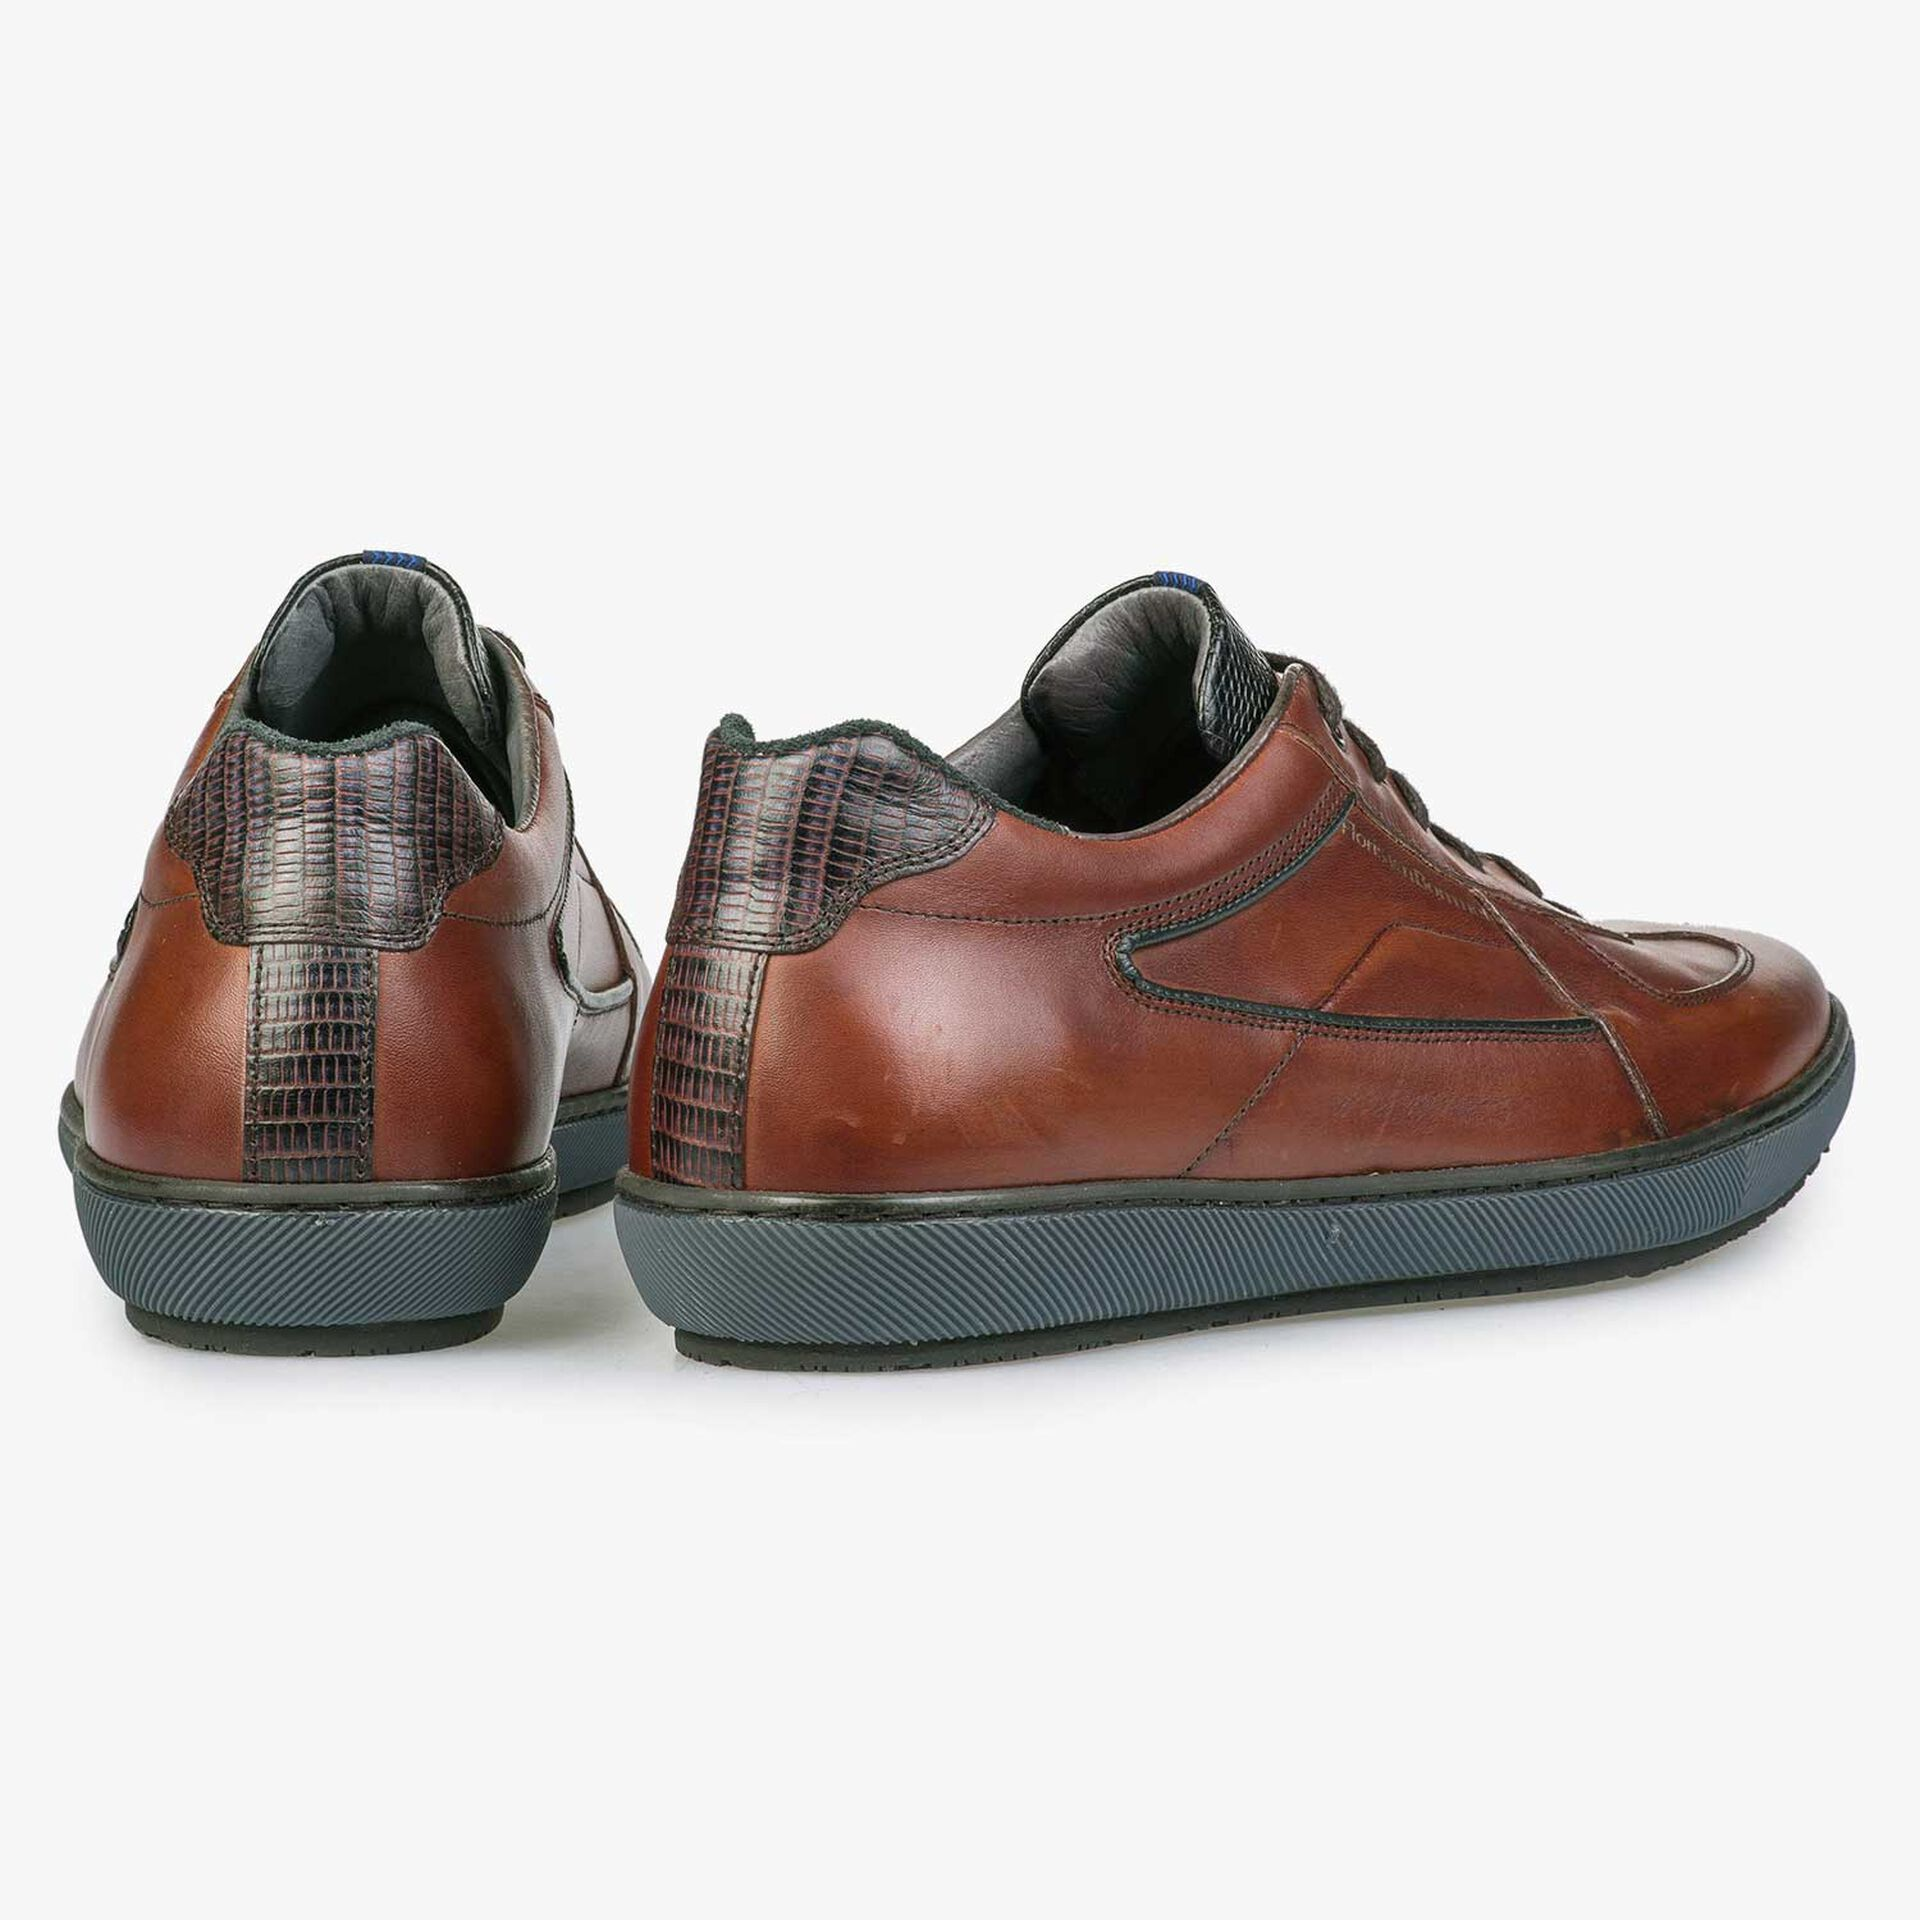 Cognac-coloured lace shoe with sportive trim lines